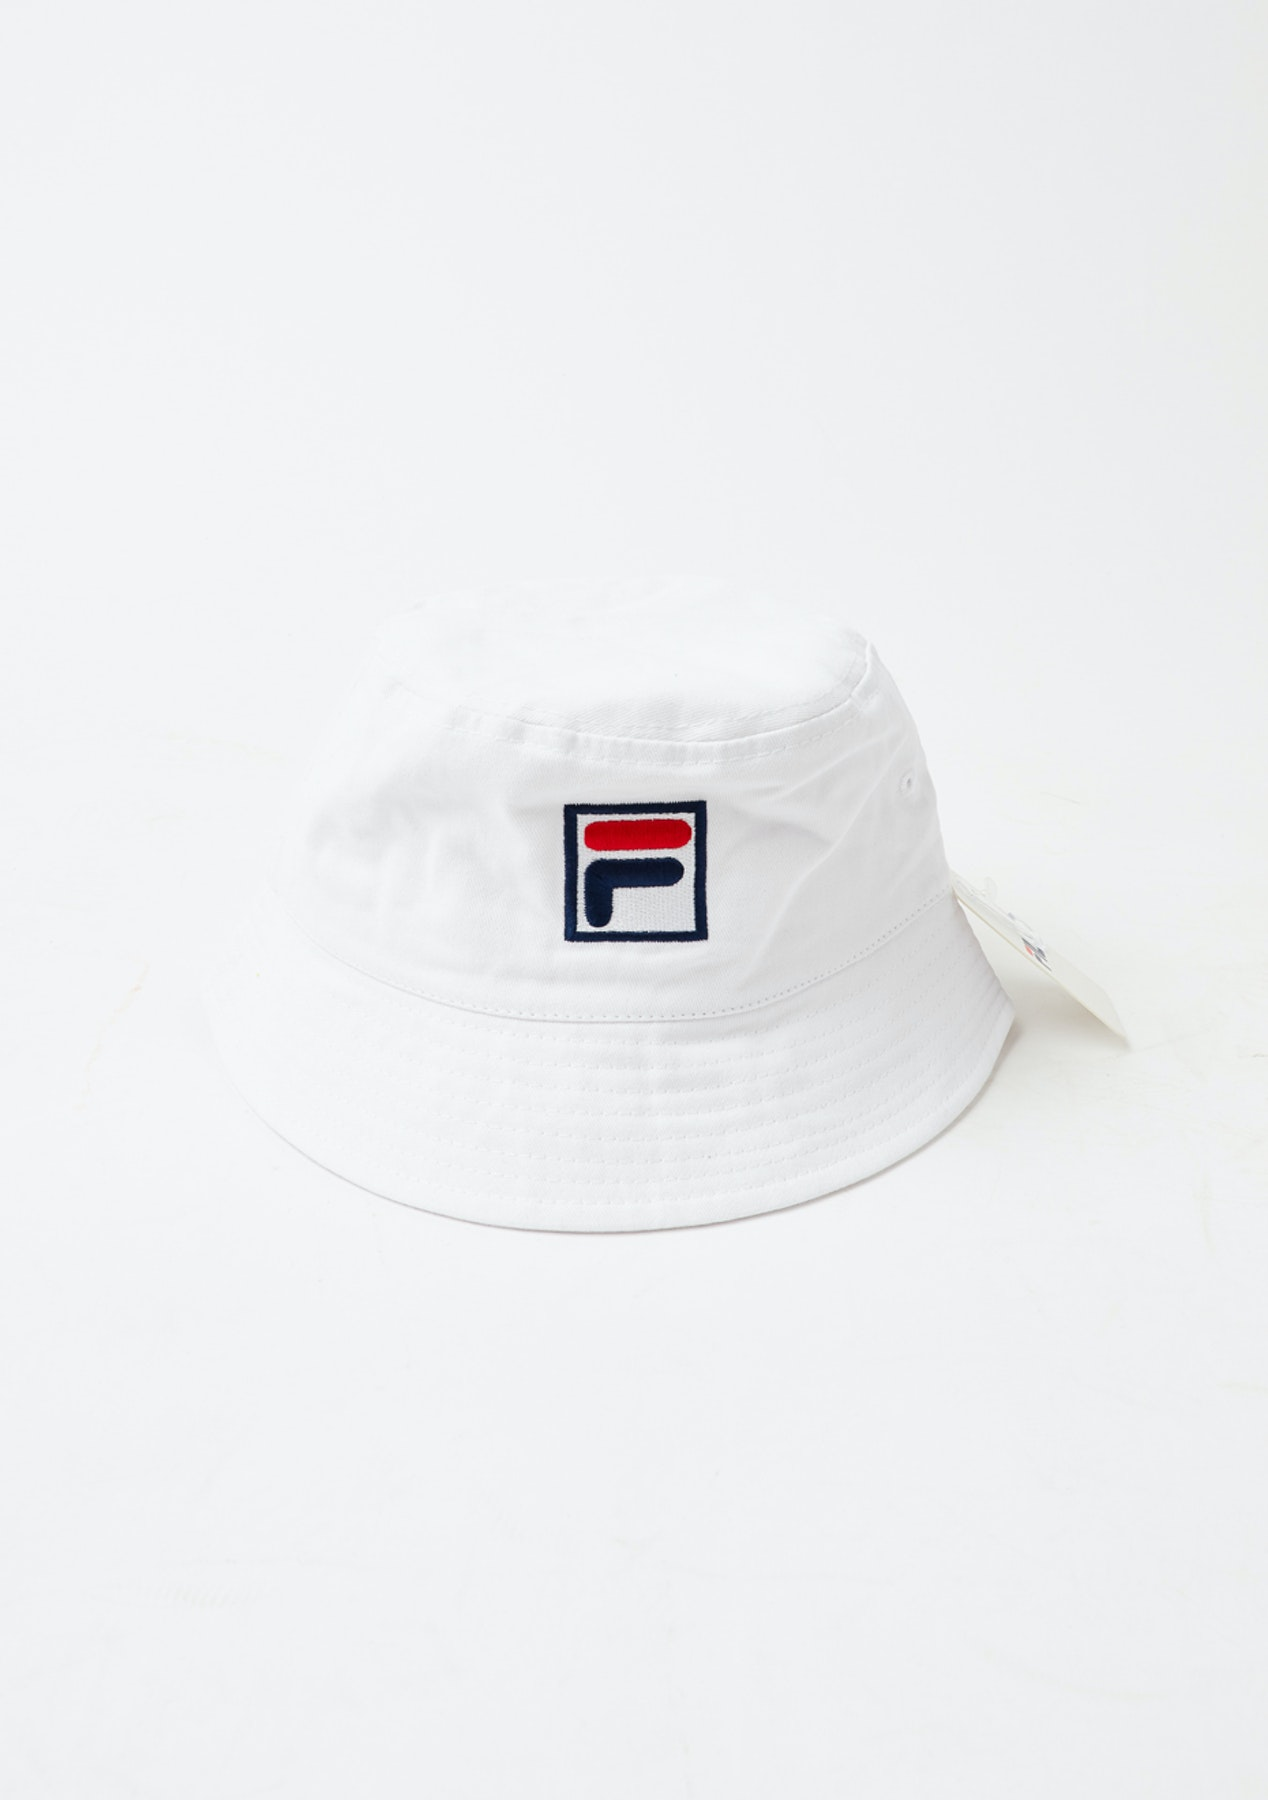 94db59cfe9b Fila Bucket Hat - White - Under  20 Mens Outlet - Onceit